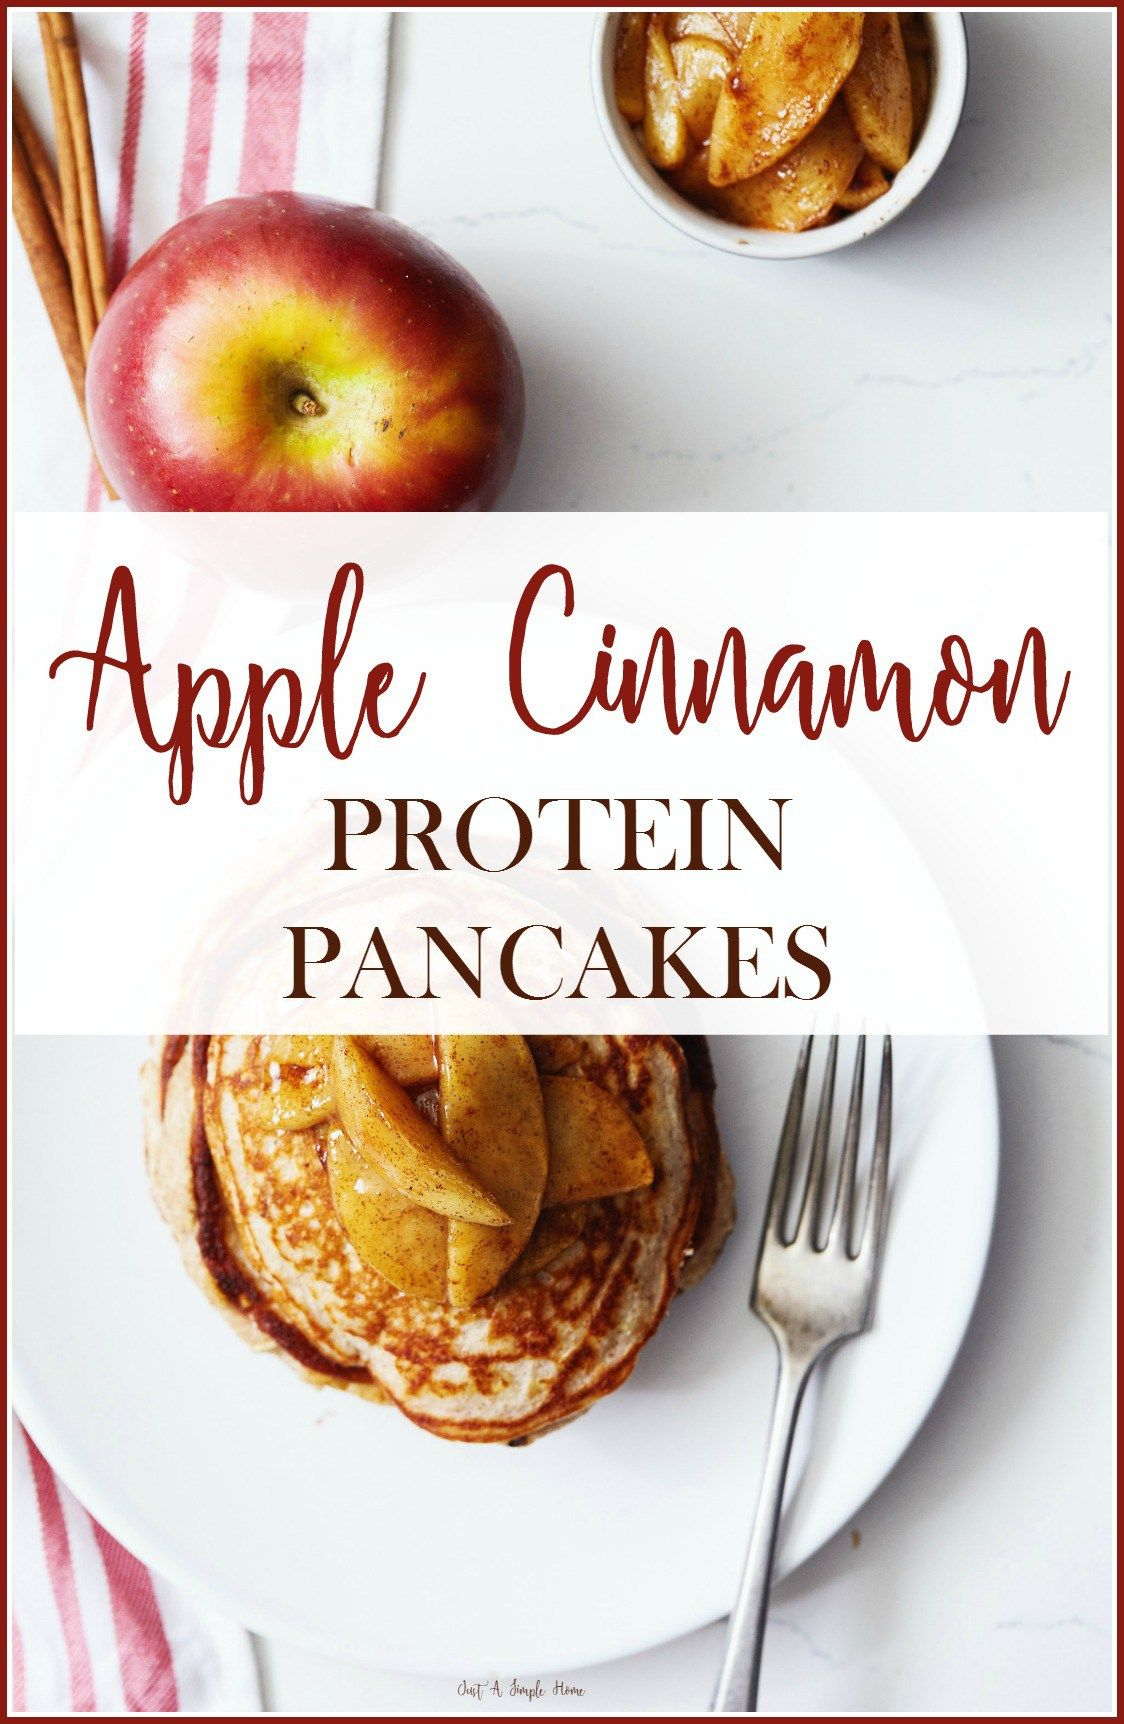 Apple Cinnamon Protein Pancakes are so yummy! Trying to eat clean but don't want to feel deprived? Try this for breakfast! Gluten free, clean eating protein packed pancakes for breakfast. The whole family will enjoy!